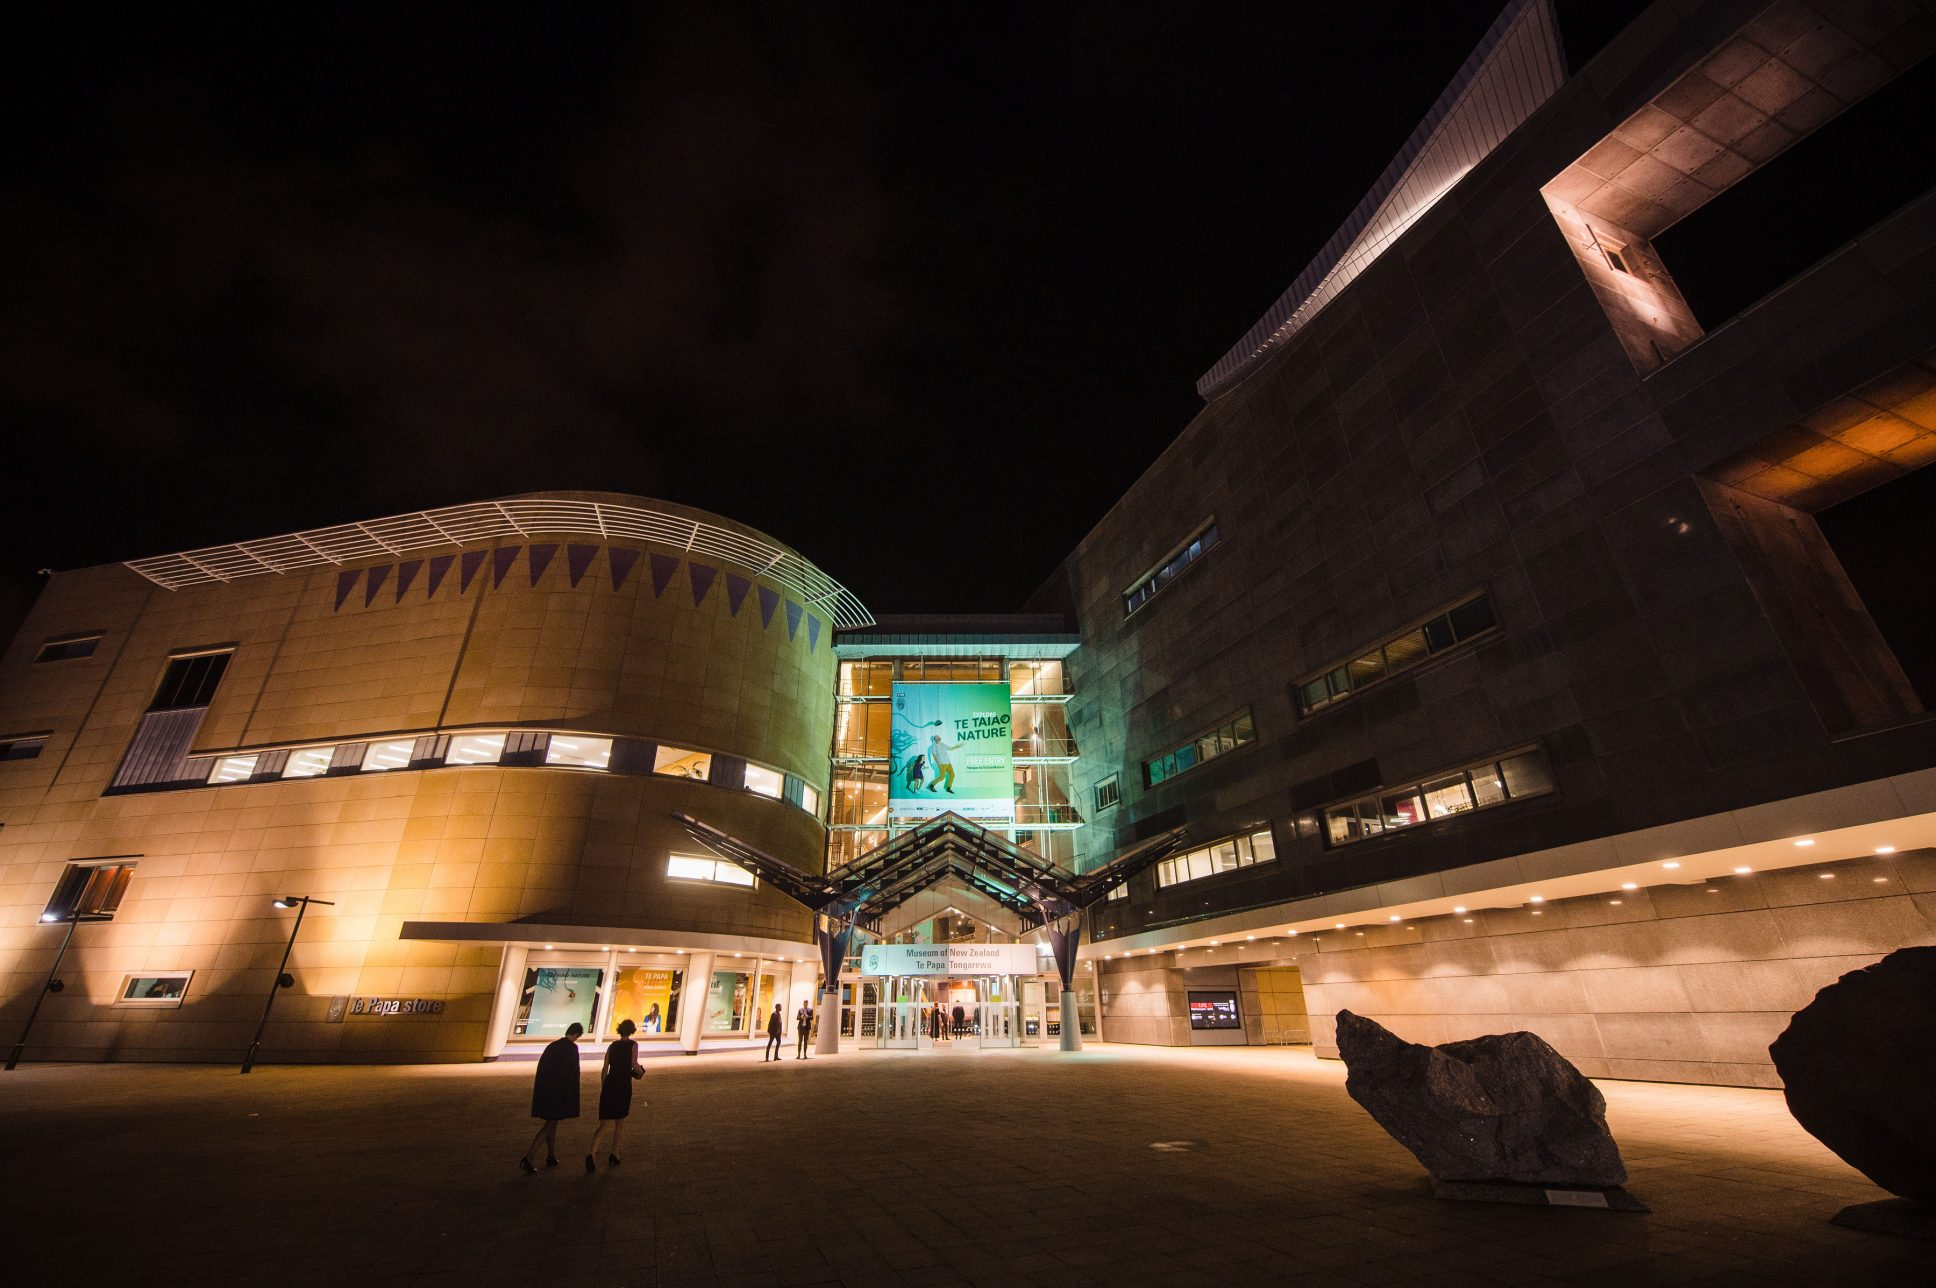 Te Papa museum at night with beautiful lighting